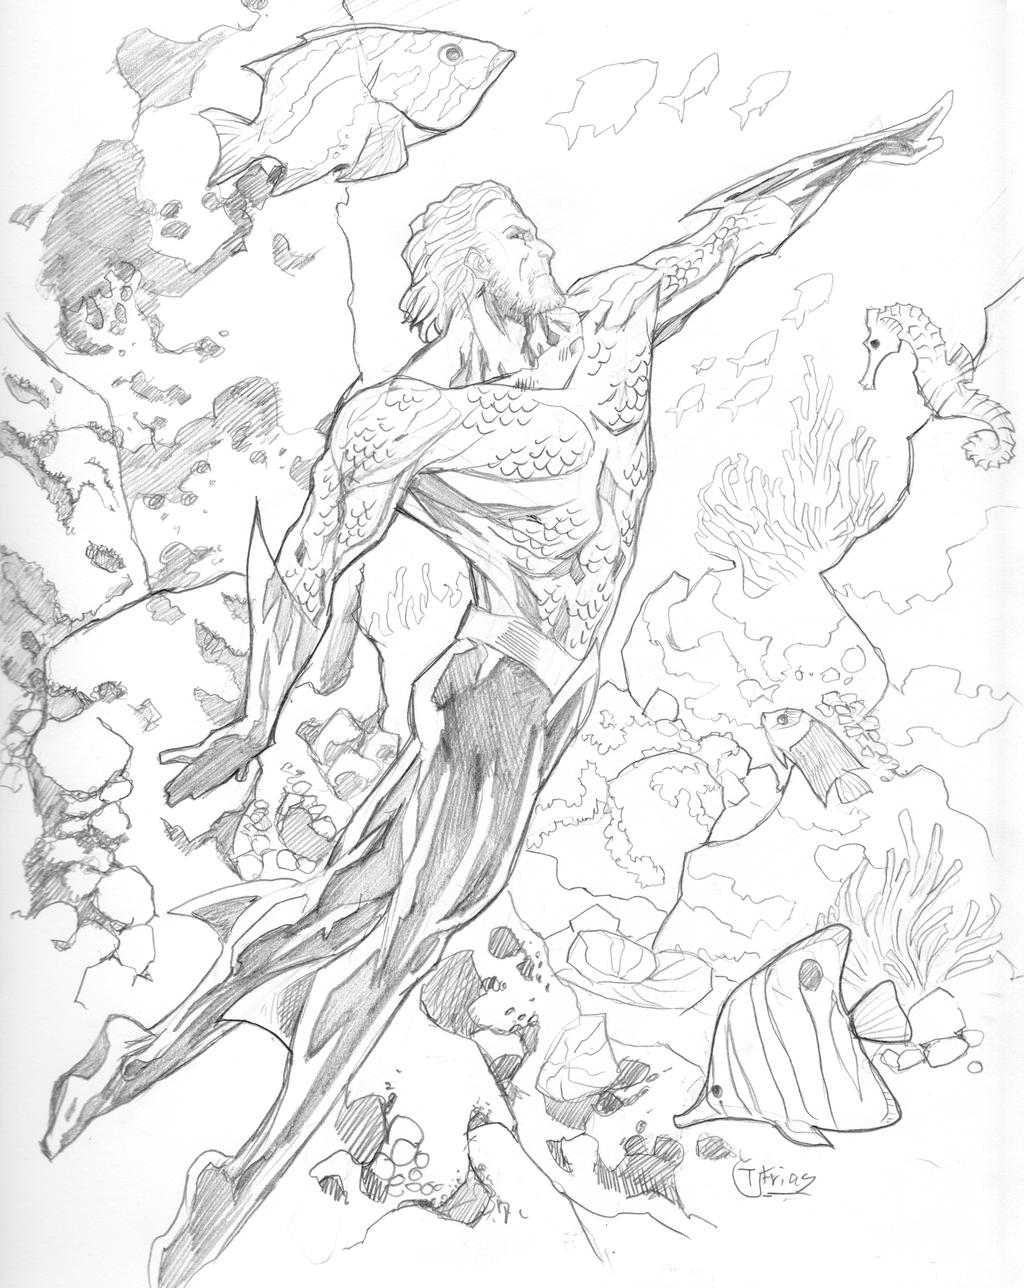 03062014 Aquaman By Guinnessyde On DeviantART